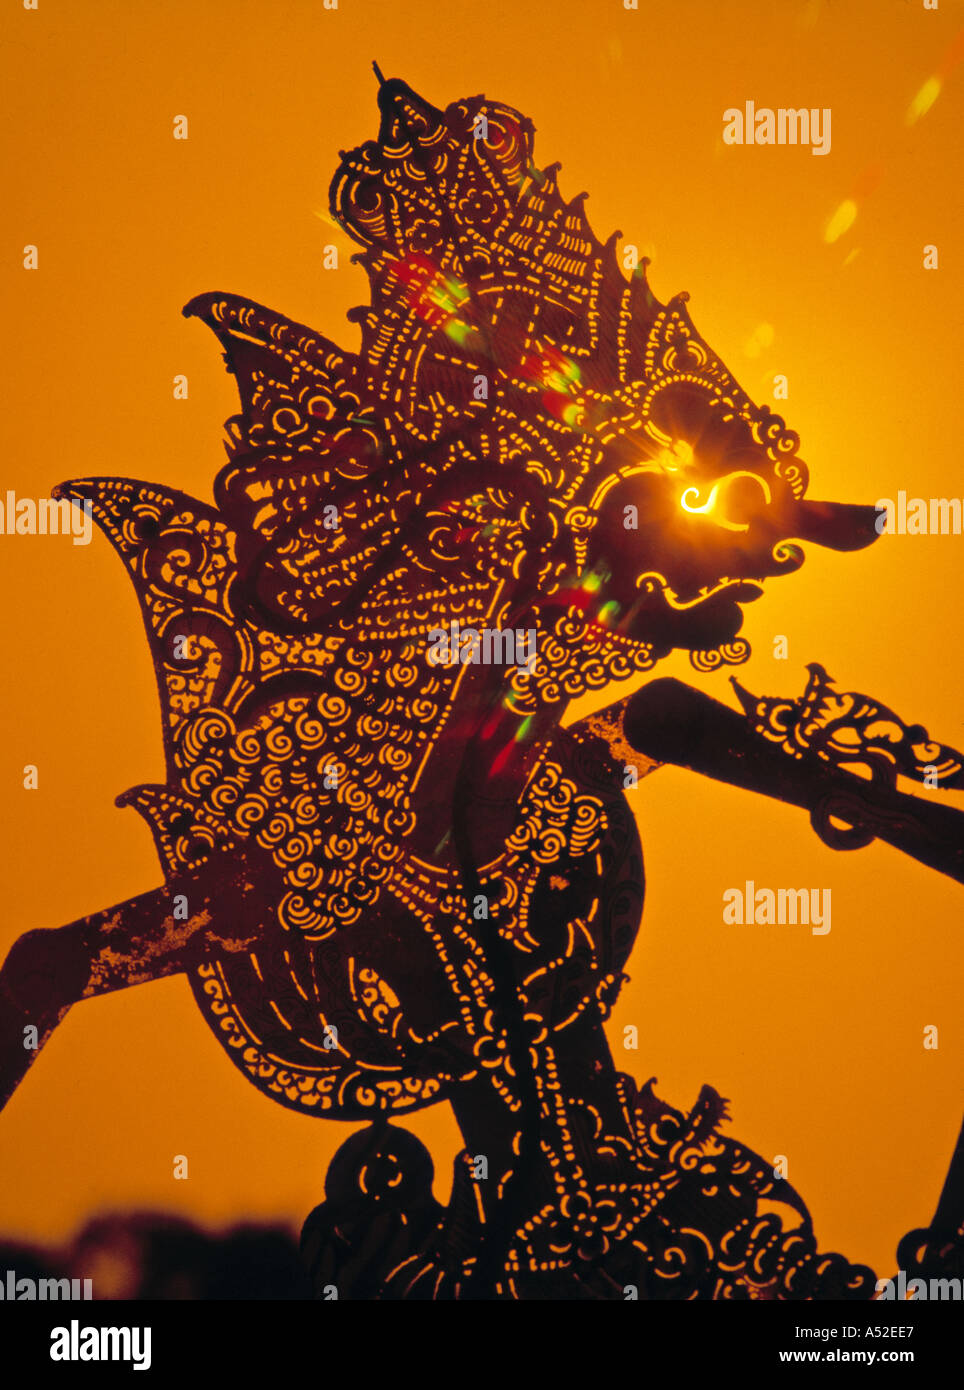 leather wayang kulit shadow puppet indonesia stock photo alamy https www alamy com leather wayang kulit shadow puppet indonesia image339687 html